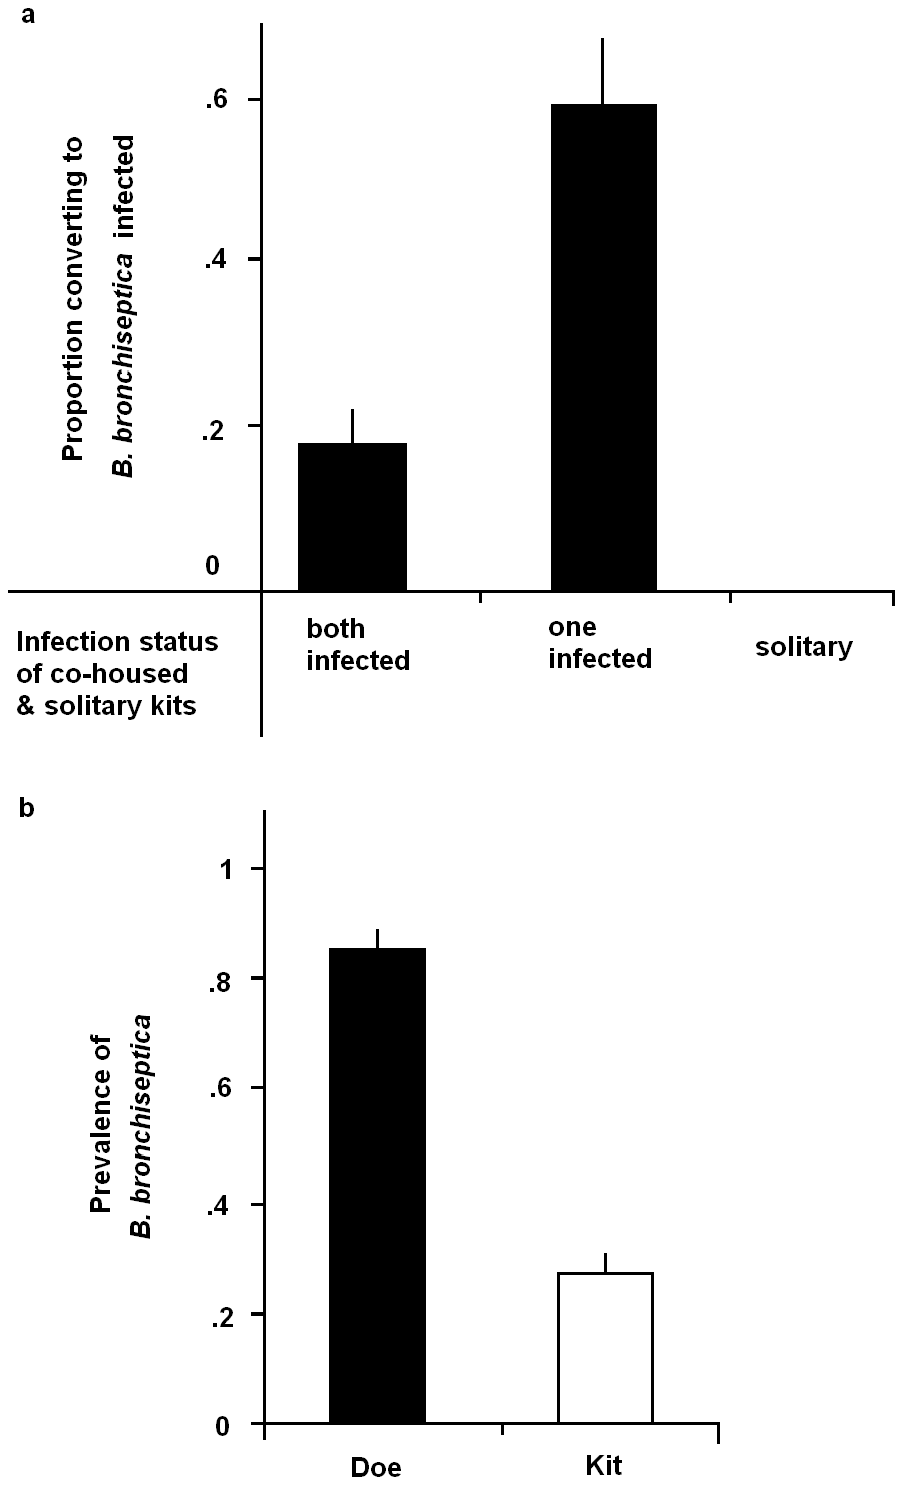 Sibling and maternal infection routes.